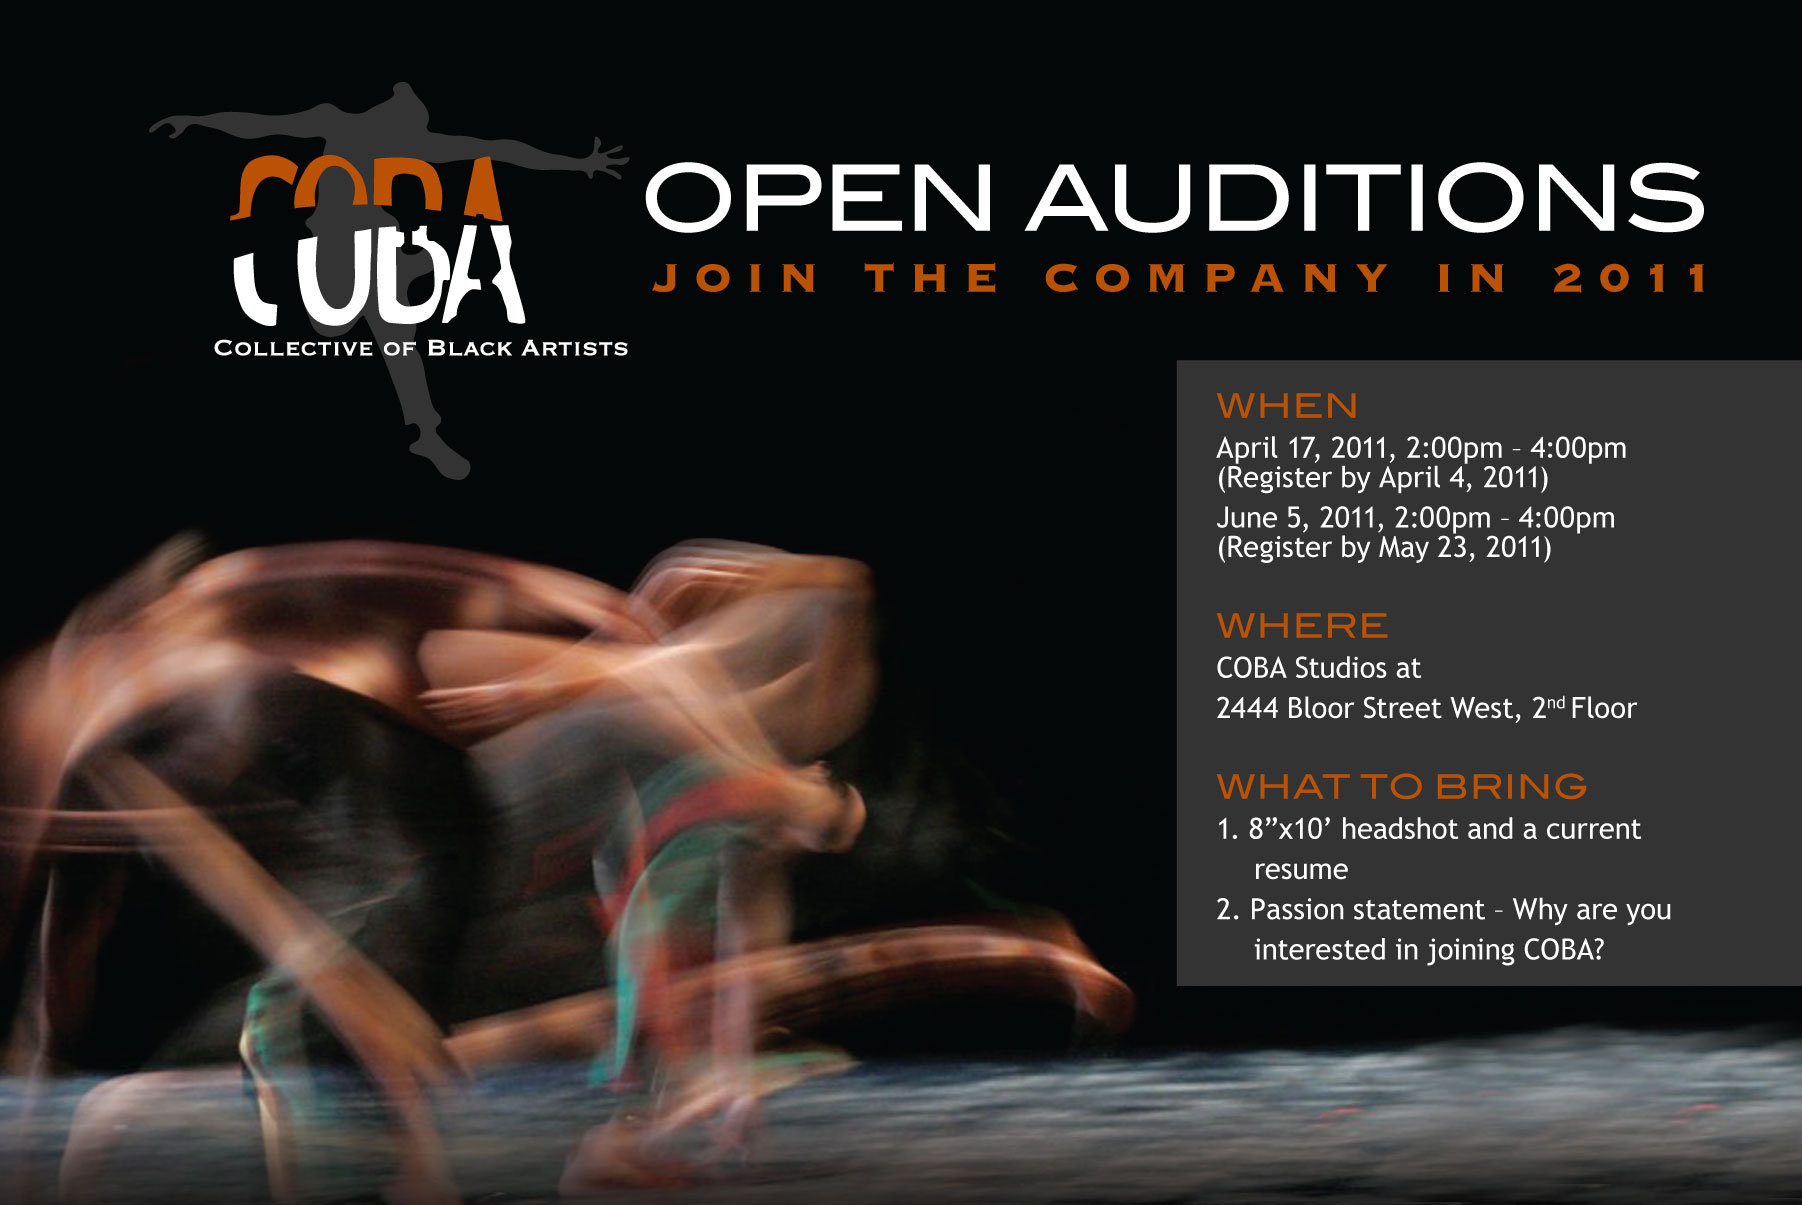 Postcard for Open Auditions